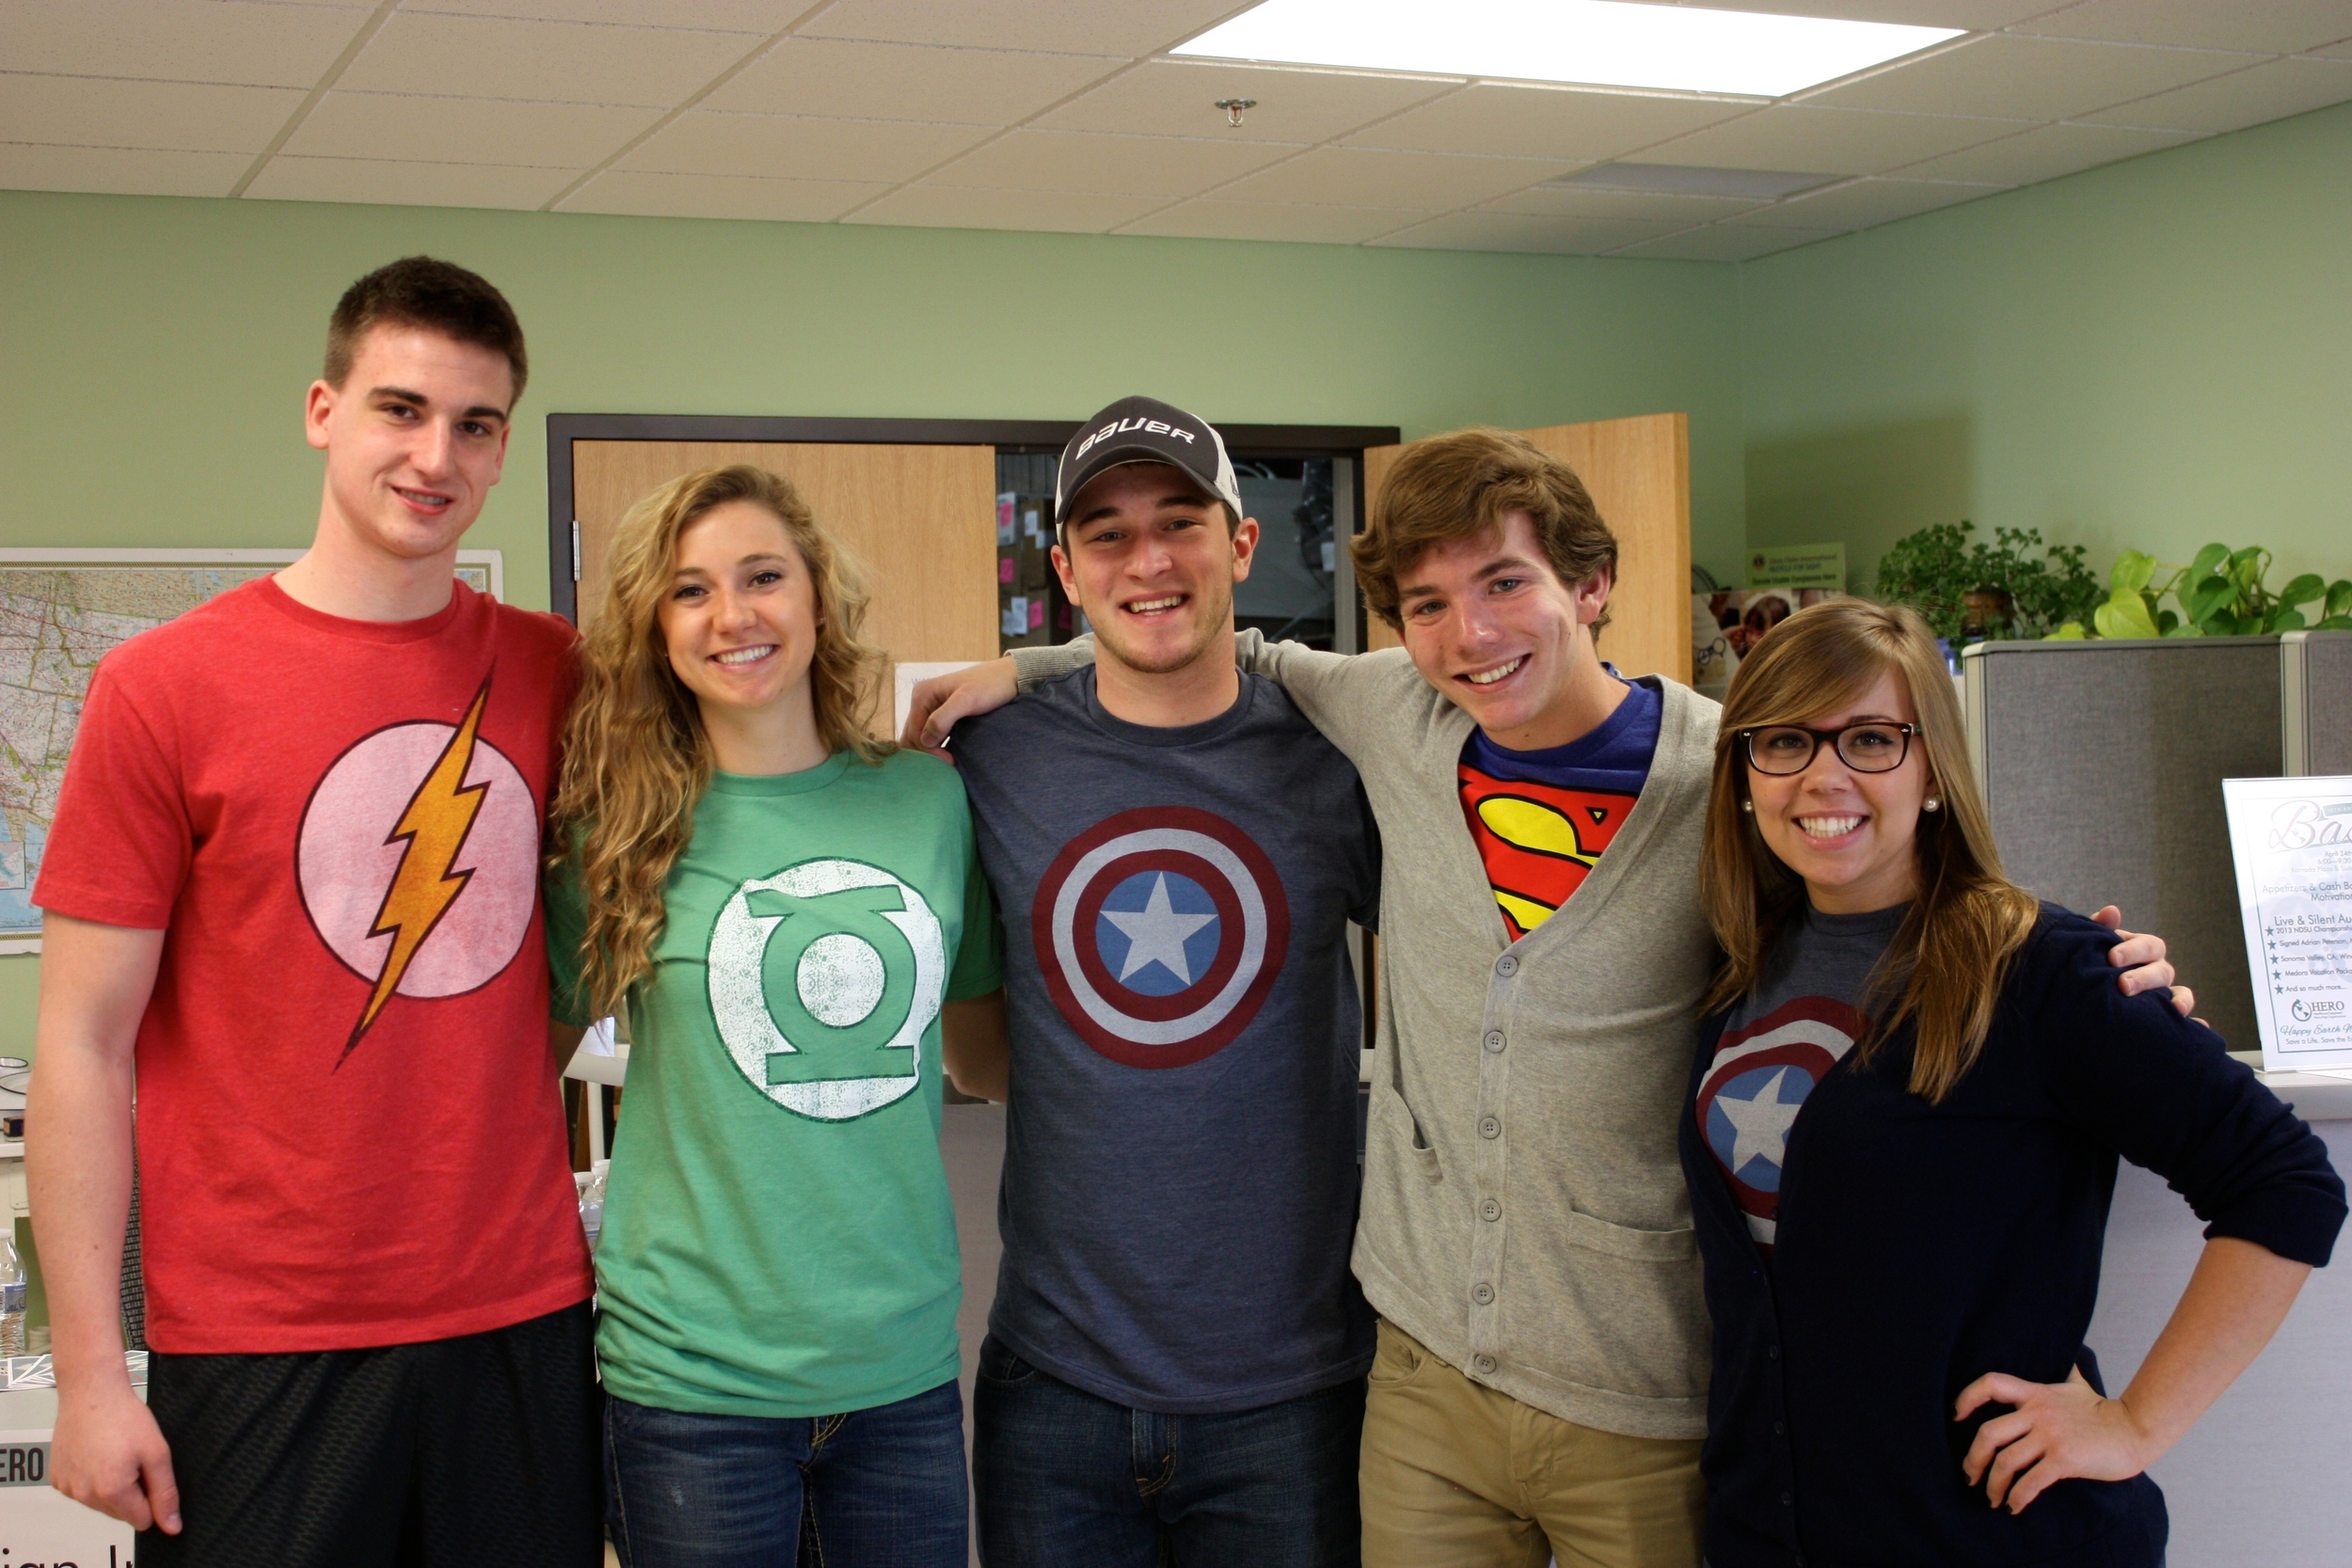 From Left to Right (Austin Roerick, Alana Kiel, Ben Walz, Austin Sandmeyer, Colette Bersie)